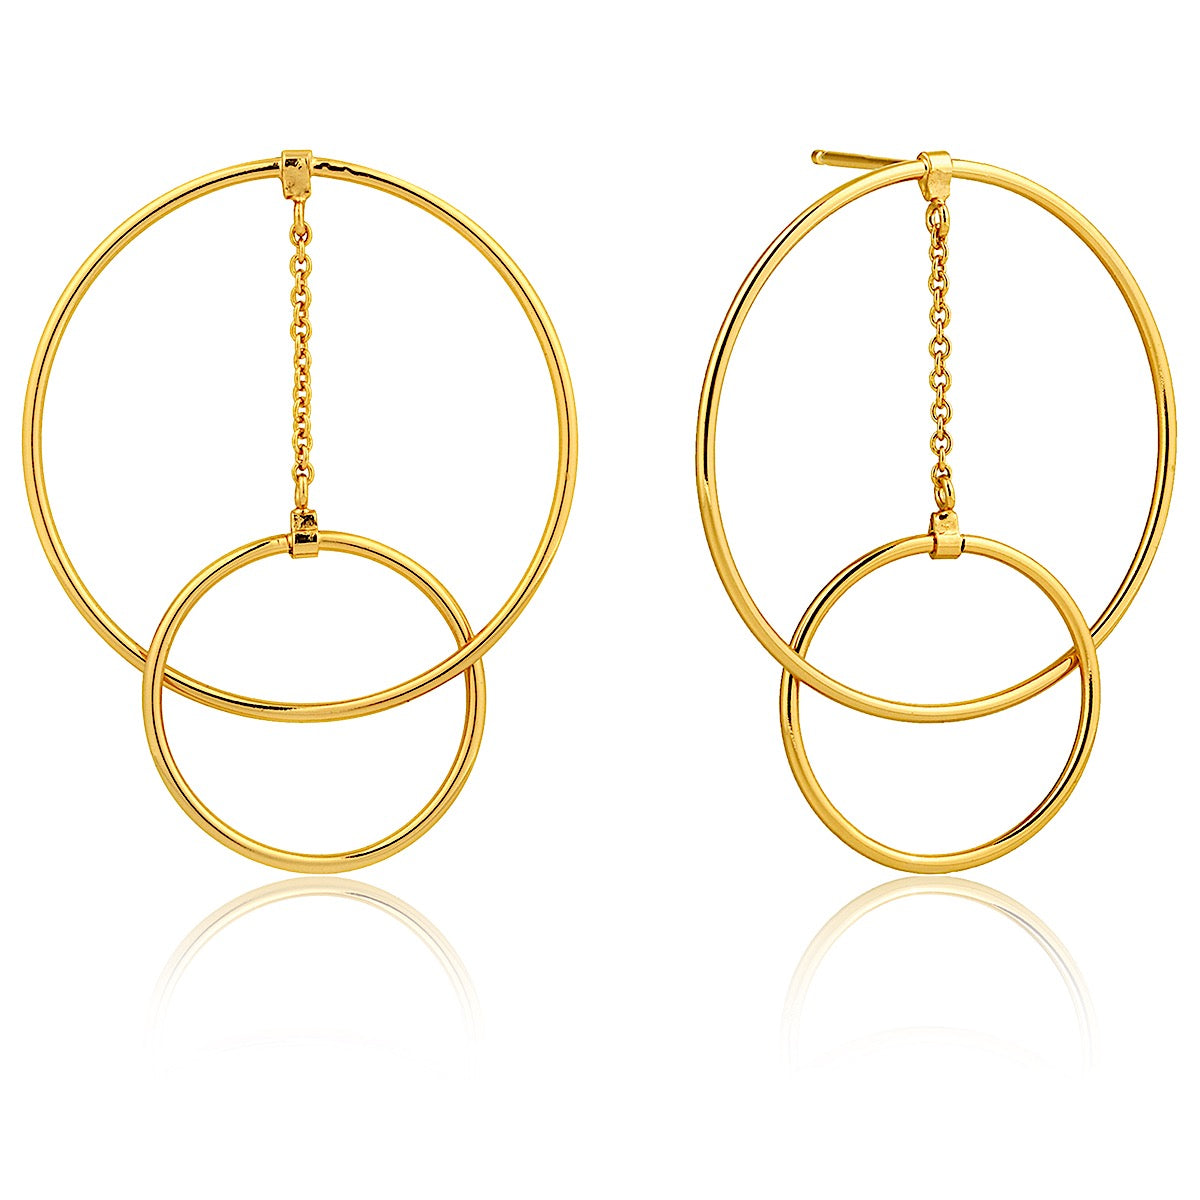 Ania Haie Gold Modern Front Earrings | More Than Just at Gift | Narborough Hall